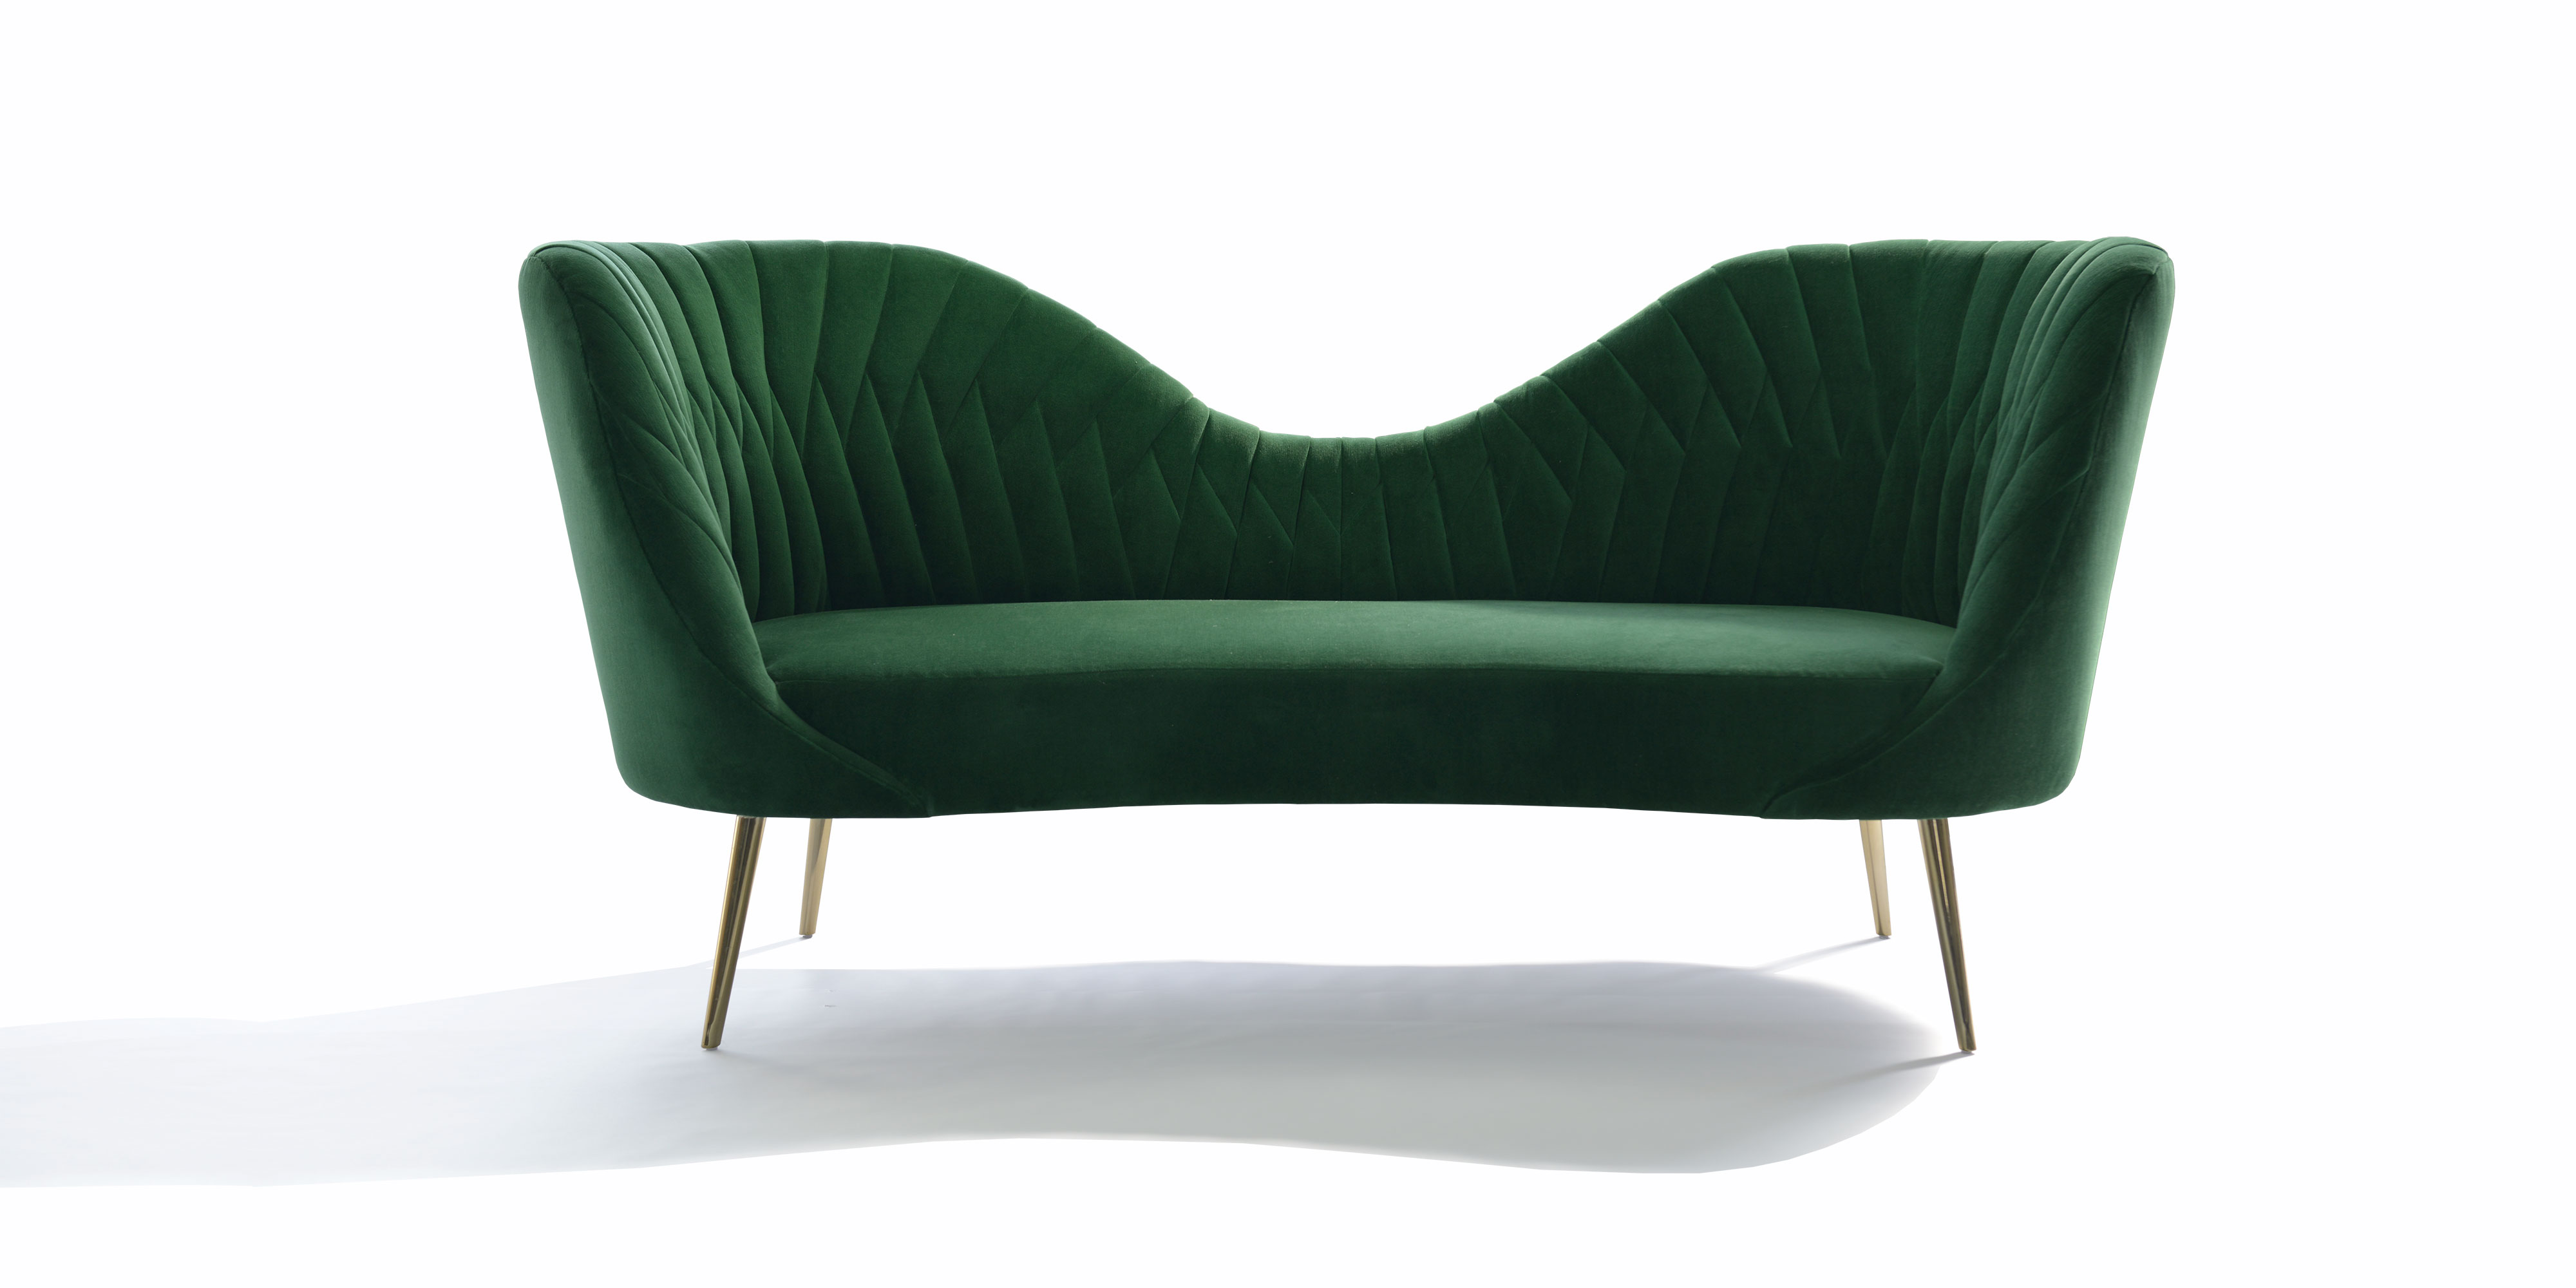 Nathan Anthony Minx Wing sofa